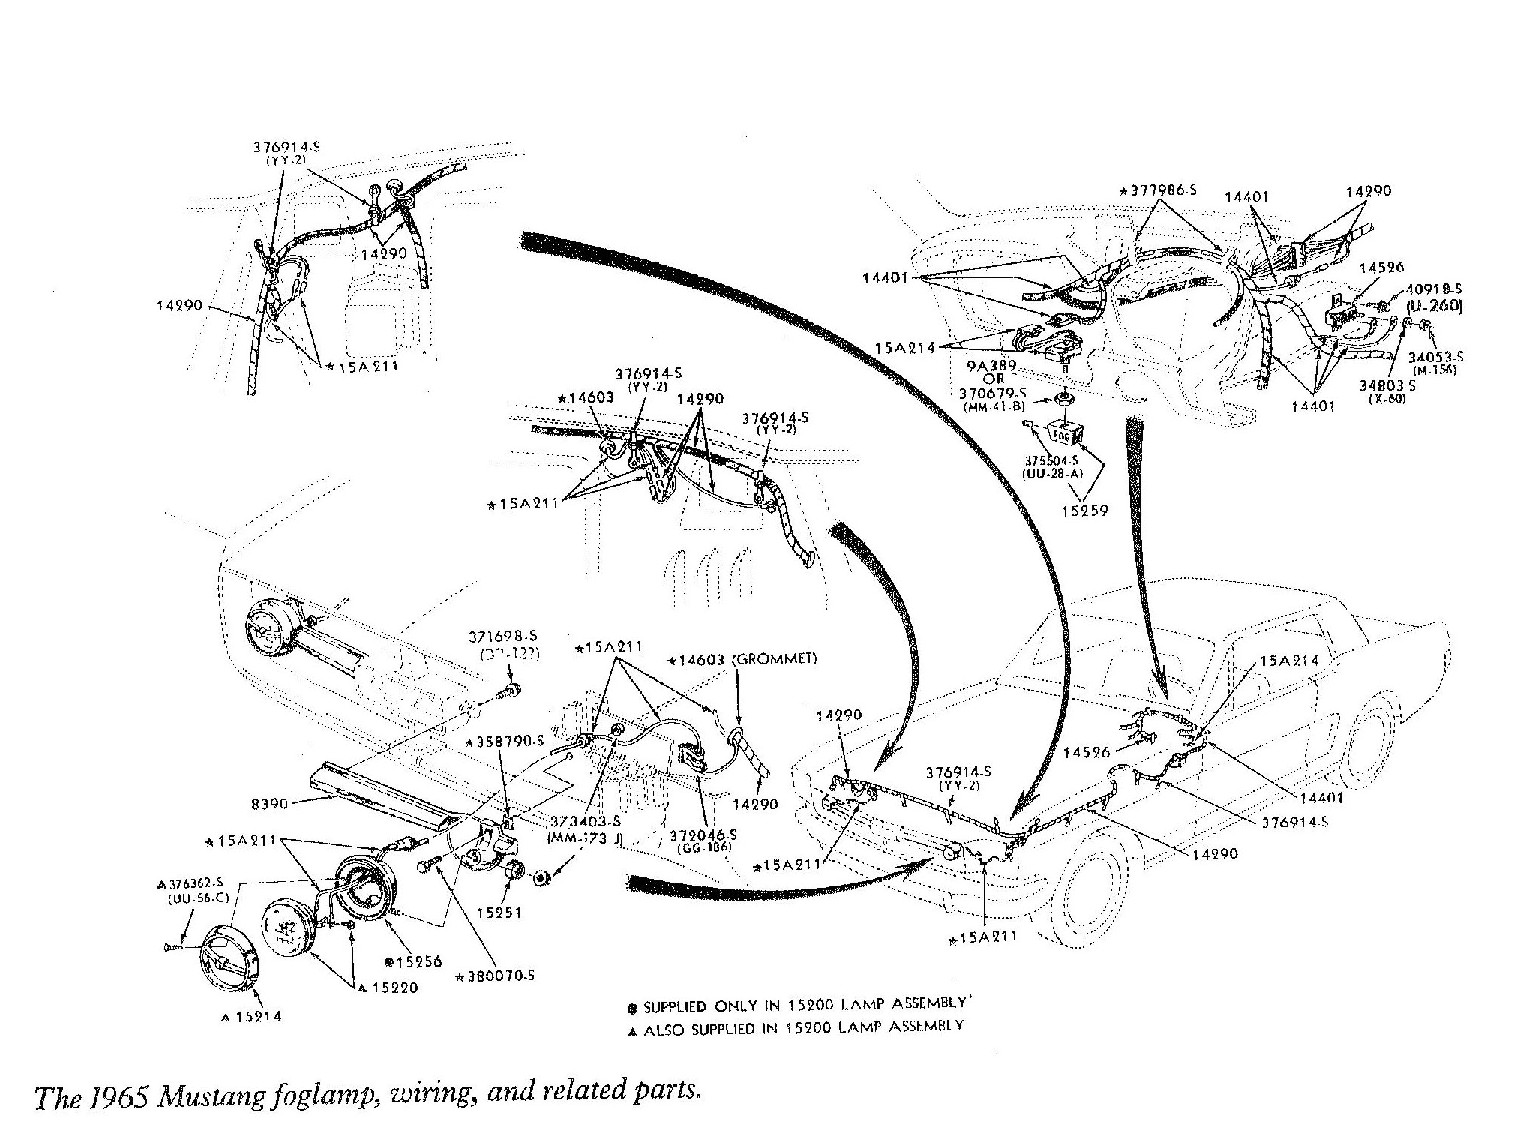 Ford Mustang Gt Drawing At Free For Personal Use Downloadable Wiring Diagram 1966 1528x1144 Identifying The True Factory